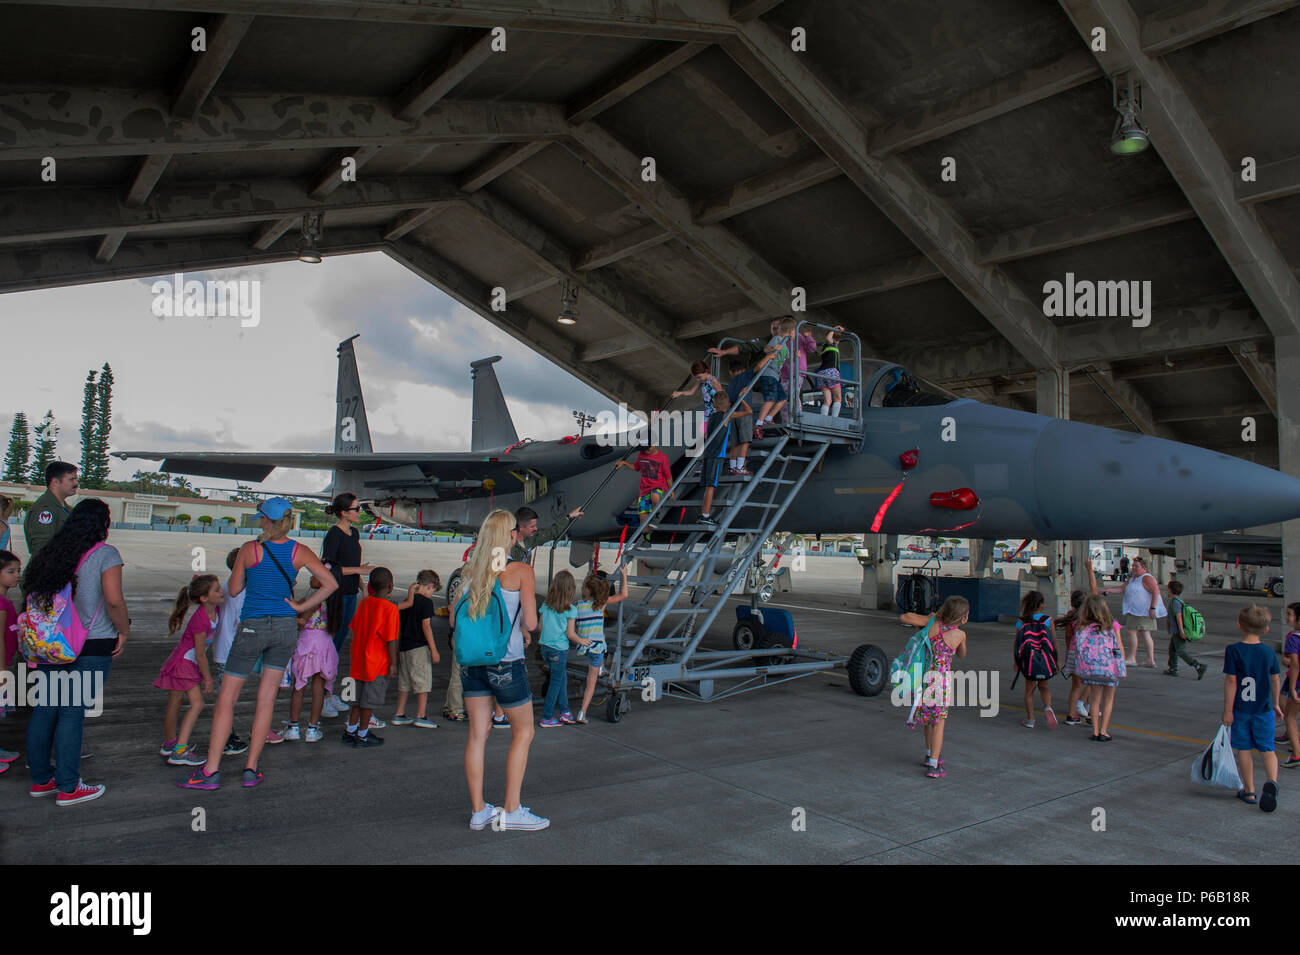 Students, parents, and staff from Bechtel Elementary School tour a 44th Fighter Squadron F-15 Eagle during a career day field trip May 16, 2016, at Kadena Air Base, Japan. The F-15 Eagle is an undefeated Mach 2 class tactical fighter that can travel at 1,875 mph.  (U.S. Air Force photo by Airman 1st Class Lynette M. Rolen) - Stock Image